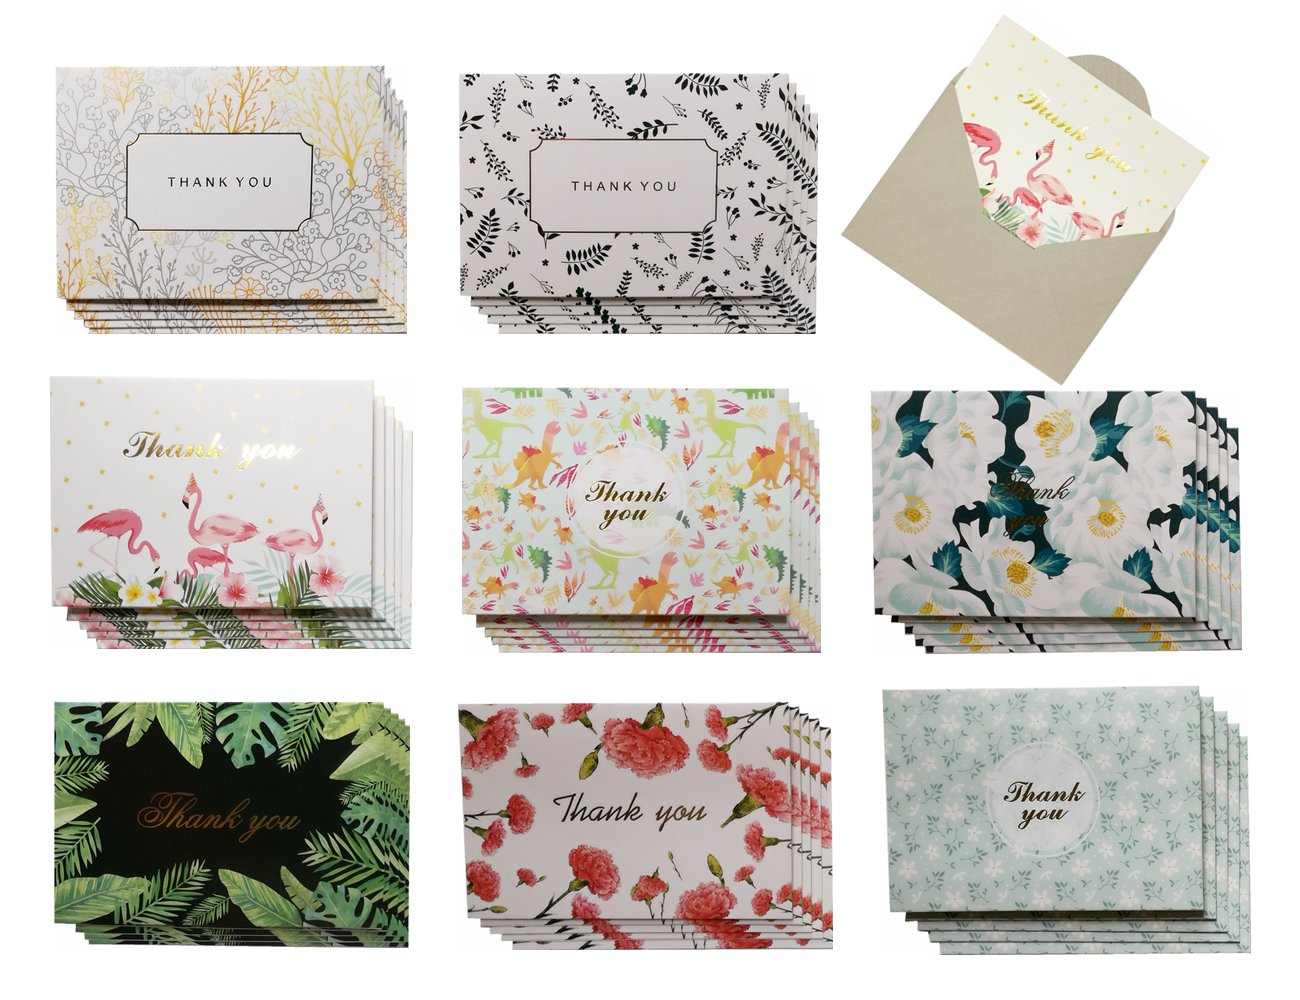 JINSRAY Thank You Cards Bulk Box Set Assortment-8 Unique Floral Designs-Blank Cards-40 Pack Assorted Flower Greeting Note Cards with Premium Envelopes for Wedding, Graduation, Baby Shower Bridal Party